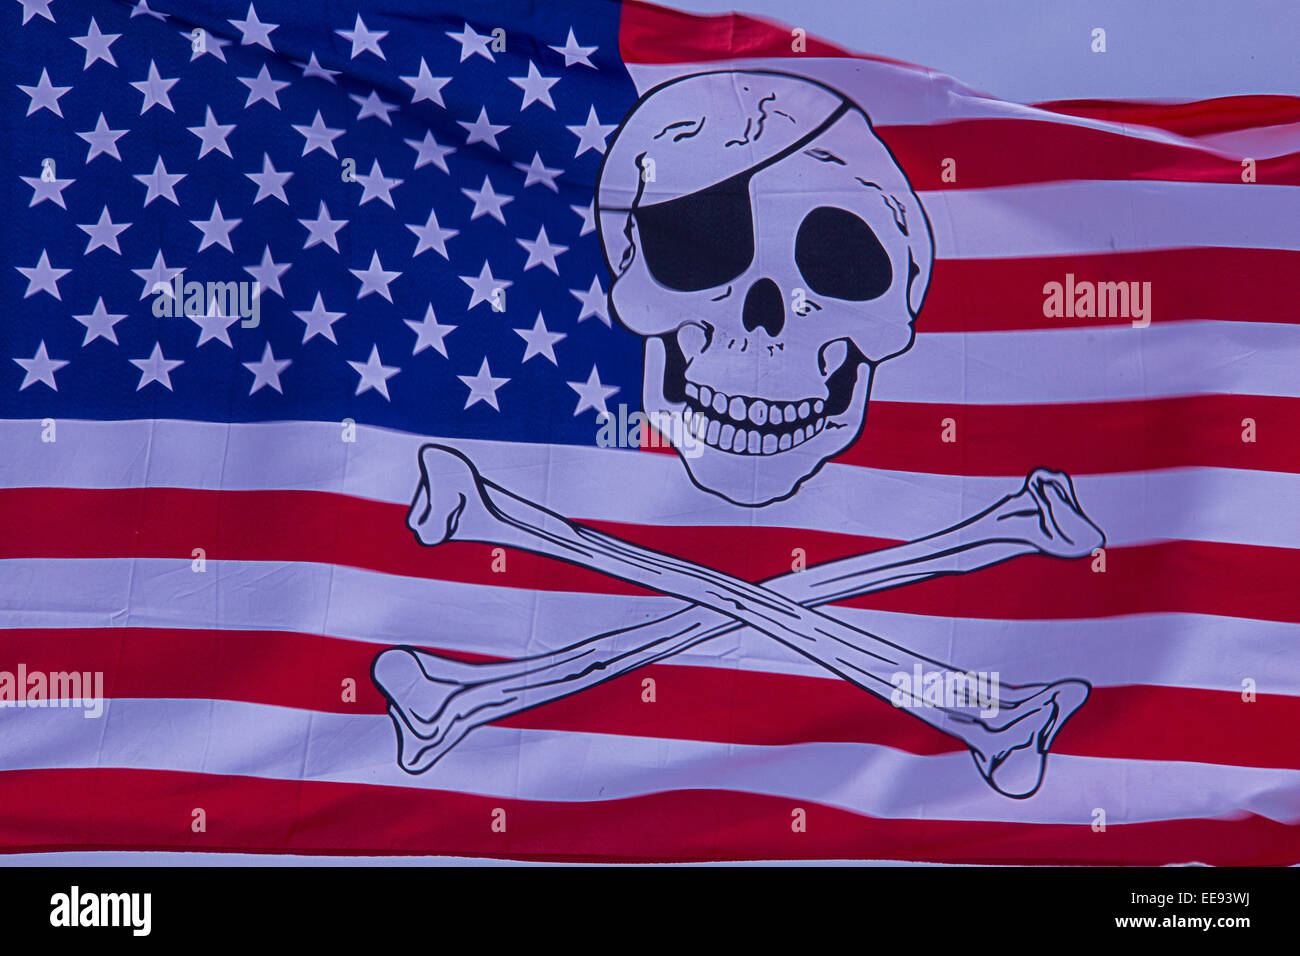 American Flag With Skull And Cross Bones